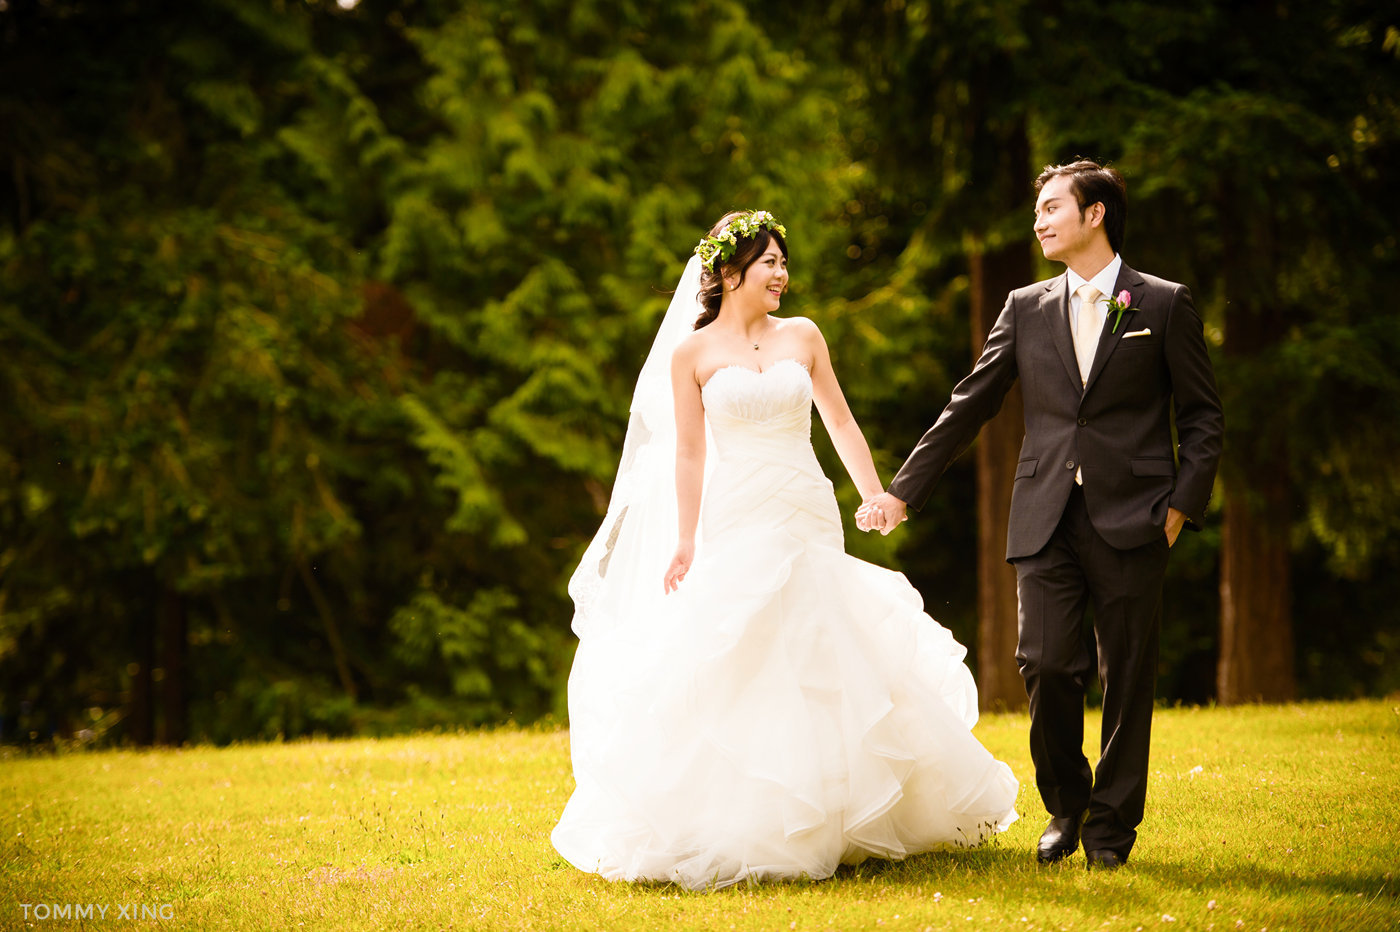 Seattle Wedding and pre wedding Los Angeles Tommy Xing Photography 西雅图洛杉矶旧金山婚礼婚纱照摄影师 120.jpg